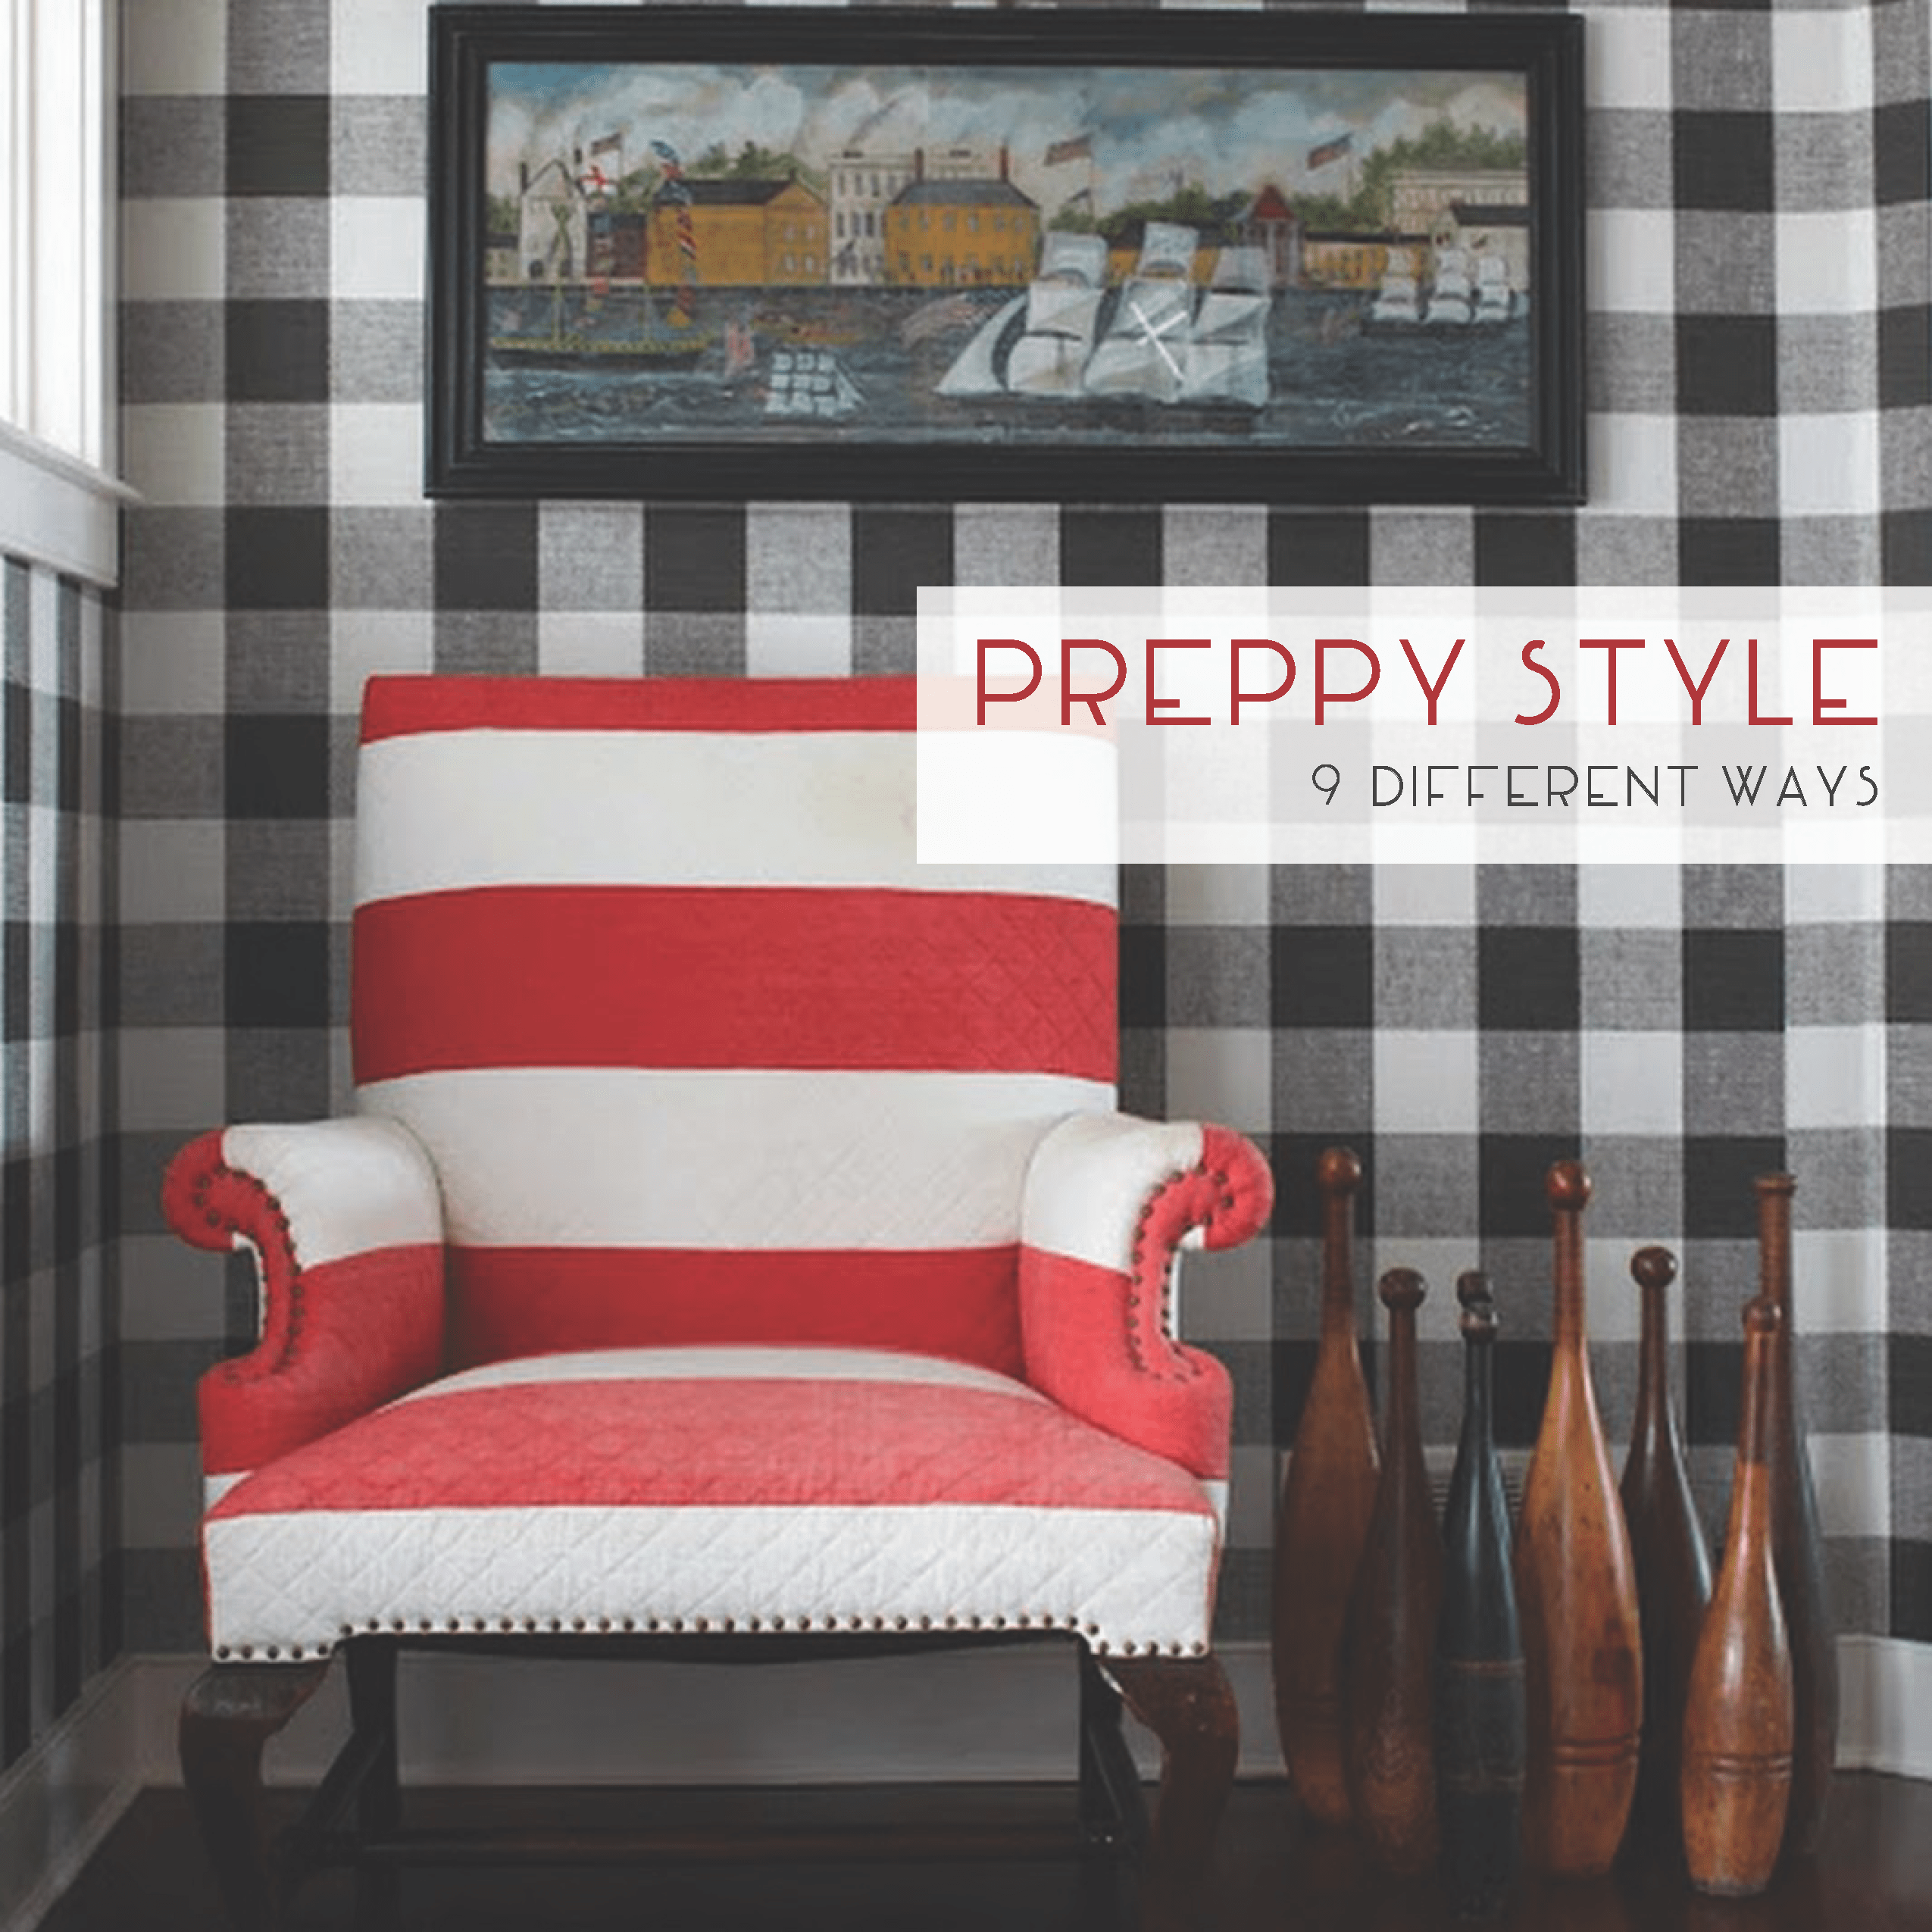 Preppy Home: PREPPY STYLE: 9 DIFFERENT WAYS